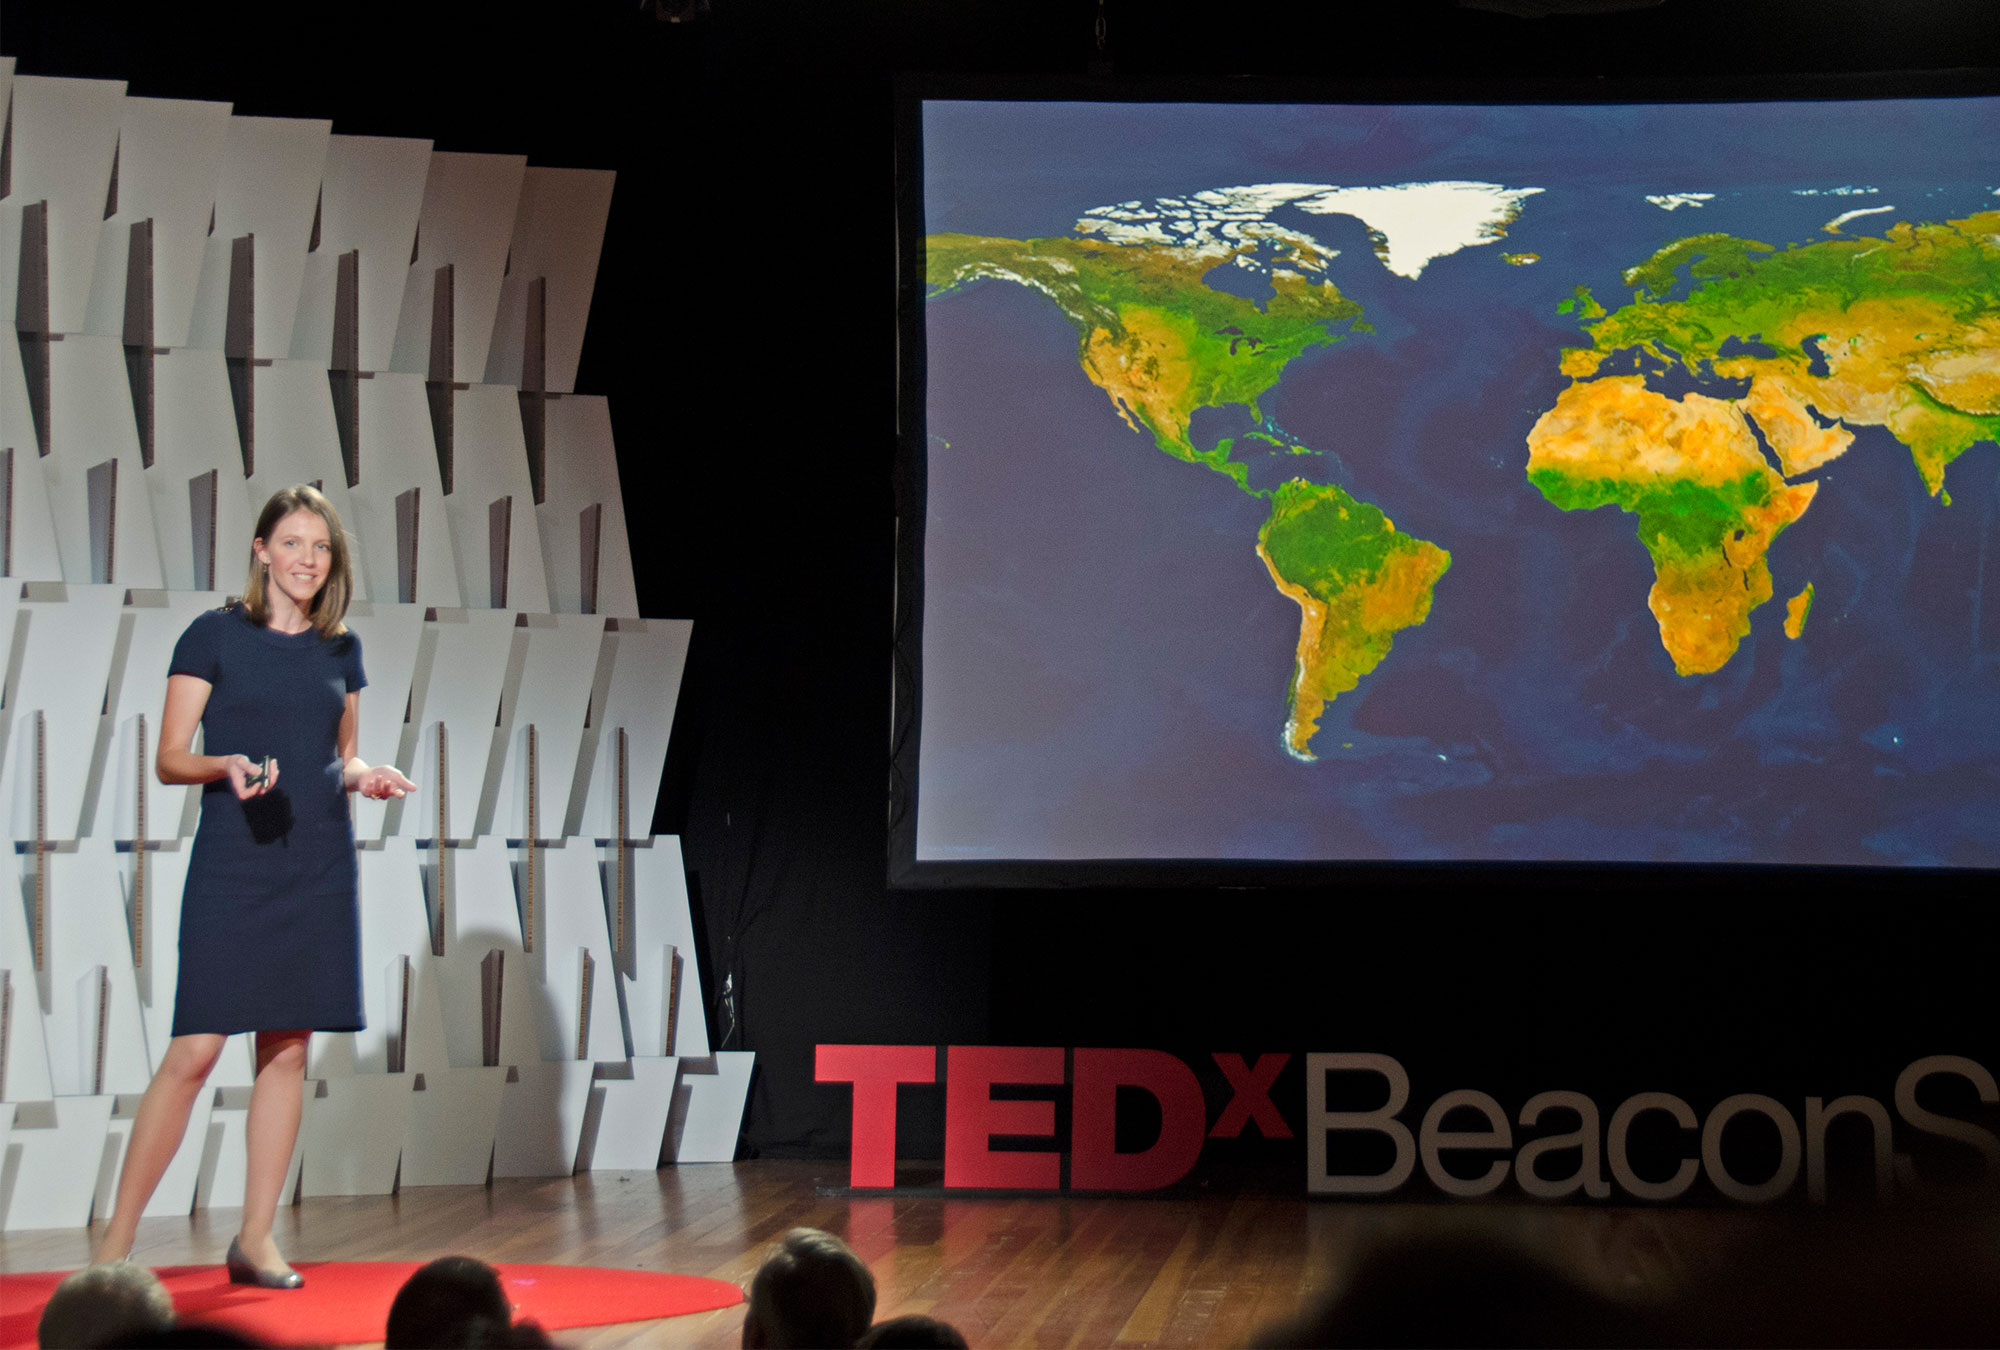 Mary Ann Bates presents on stage with a map of the world behind her